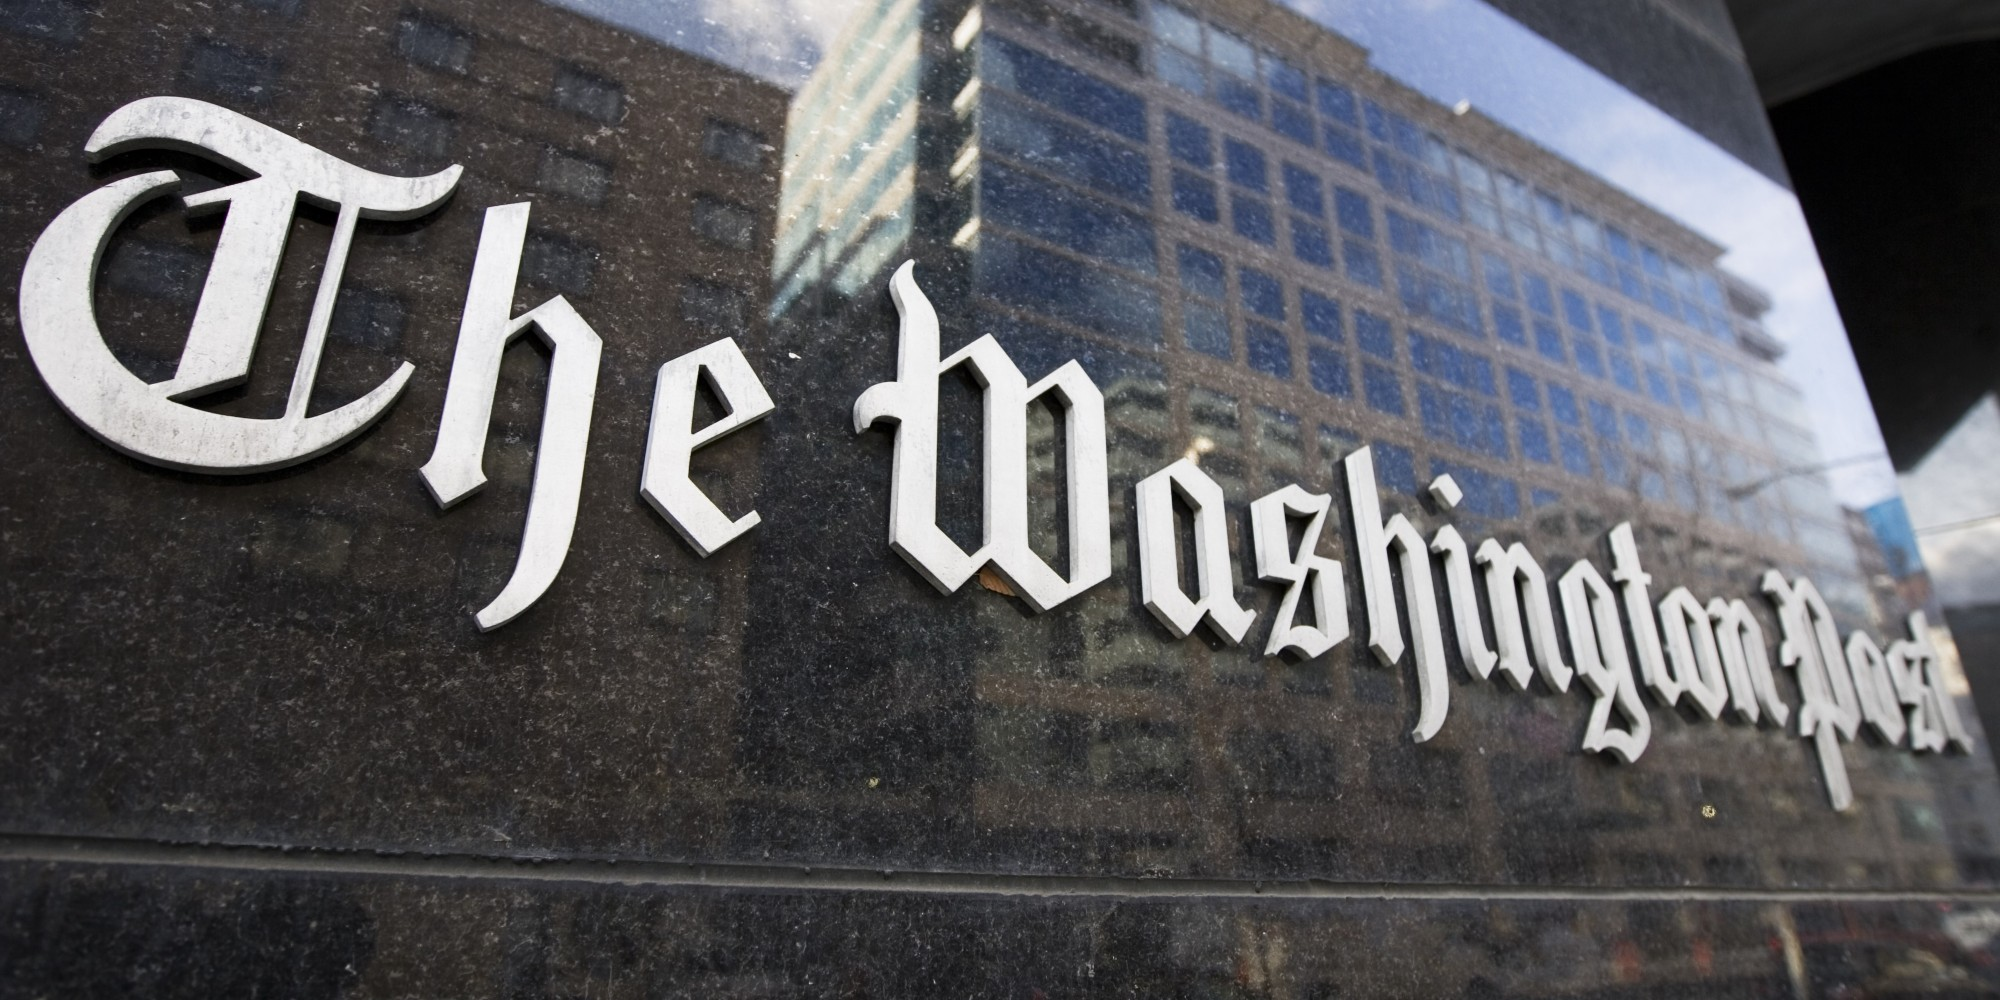 TheWashingtonPost Reaching New Level of Hypocrisy in Coverage of Hillary Email Investigation